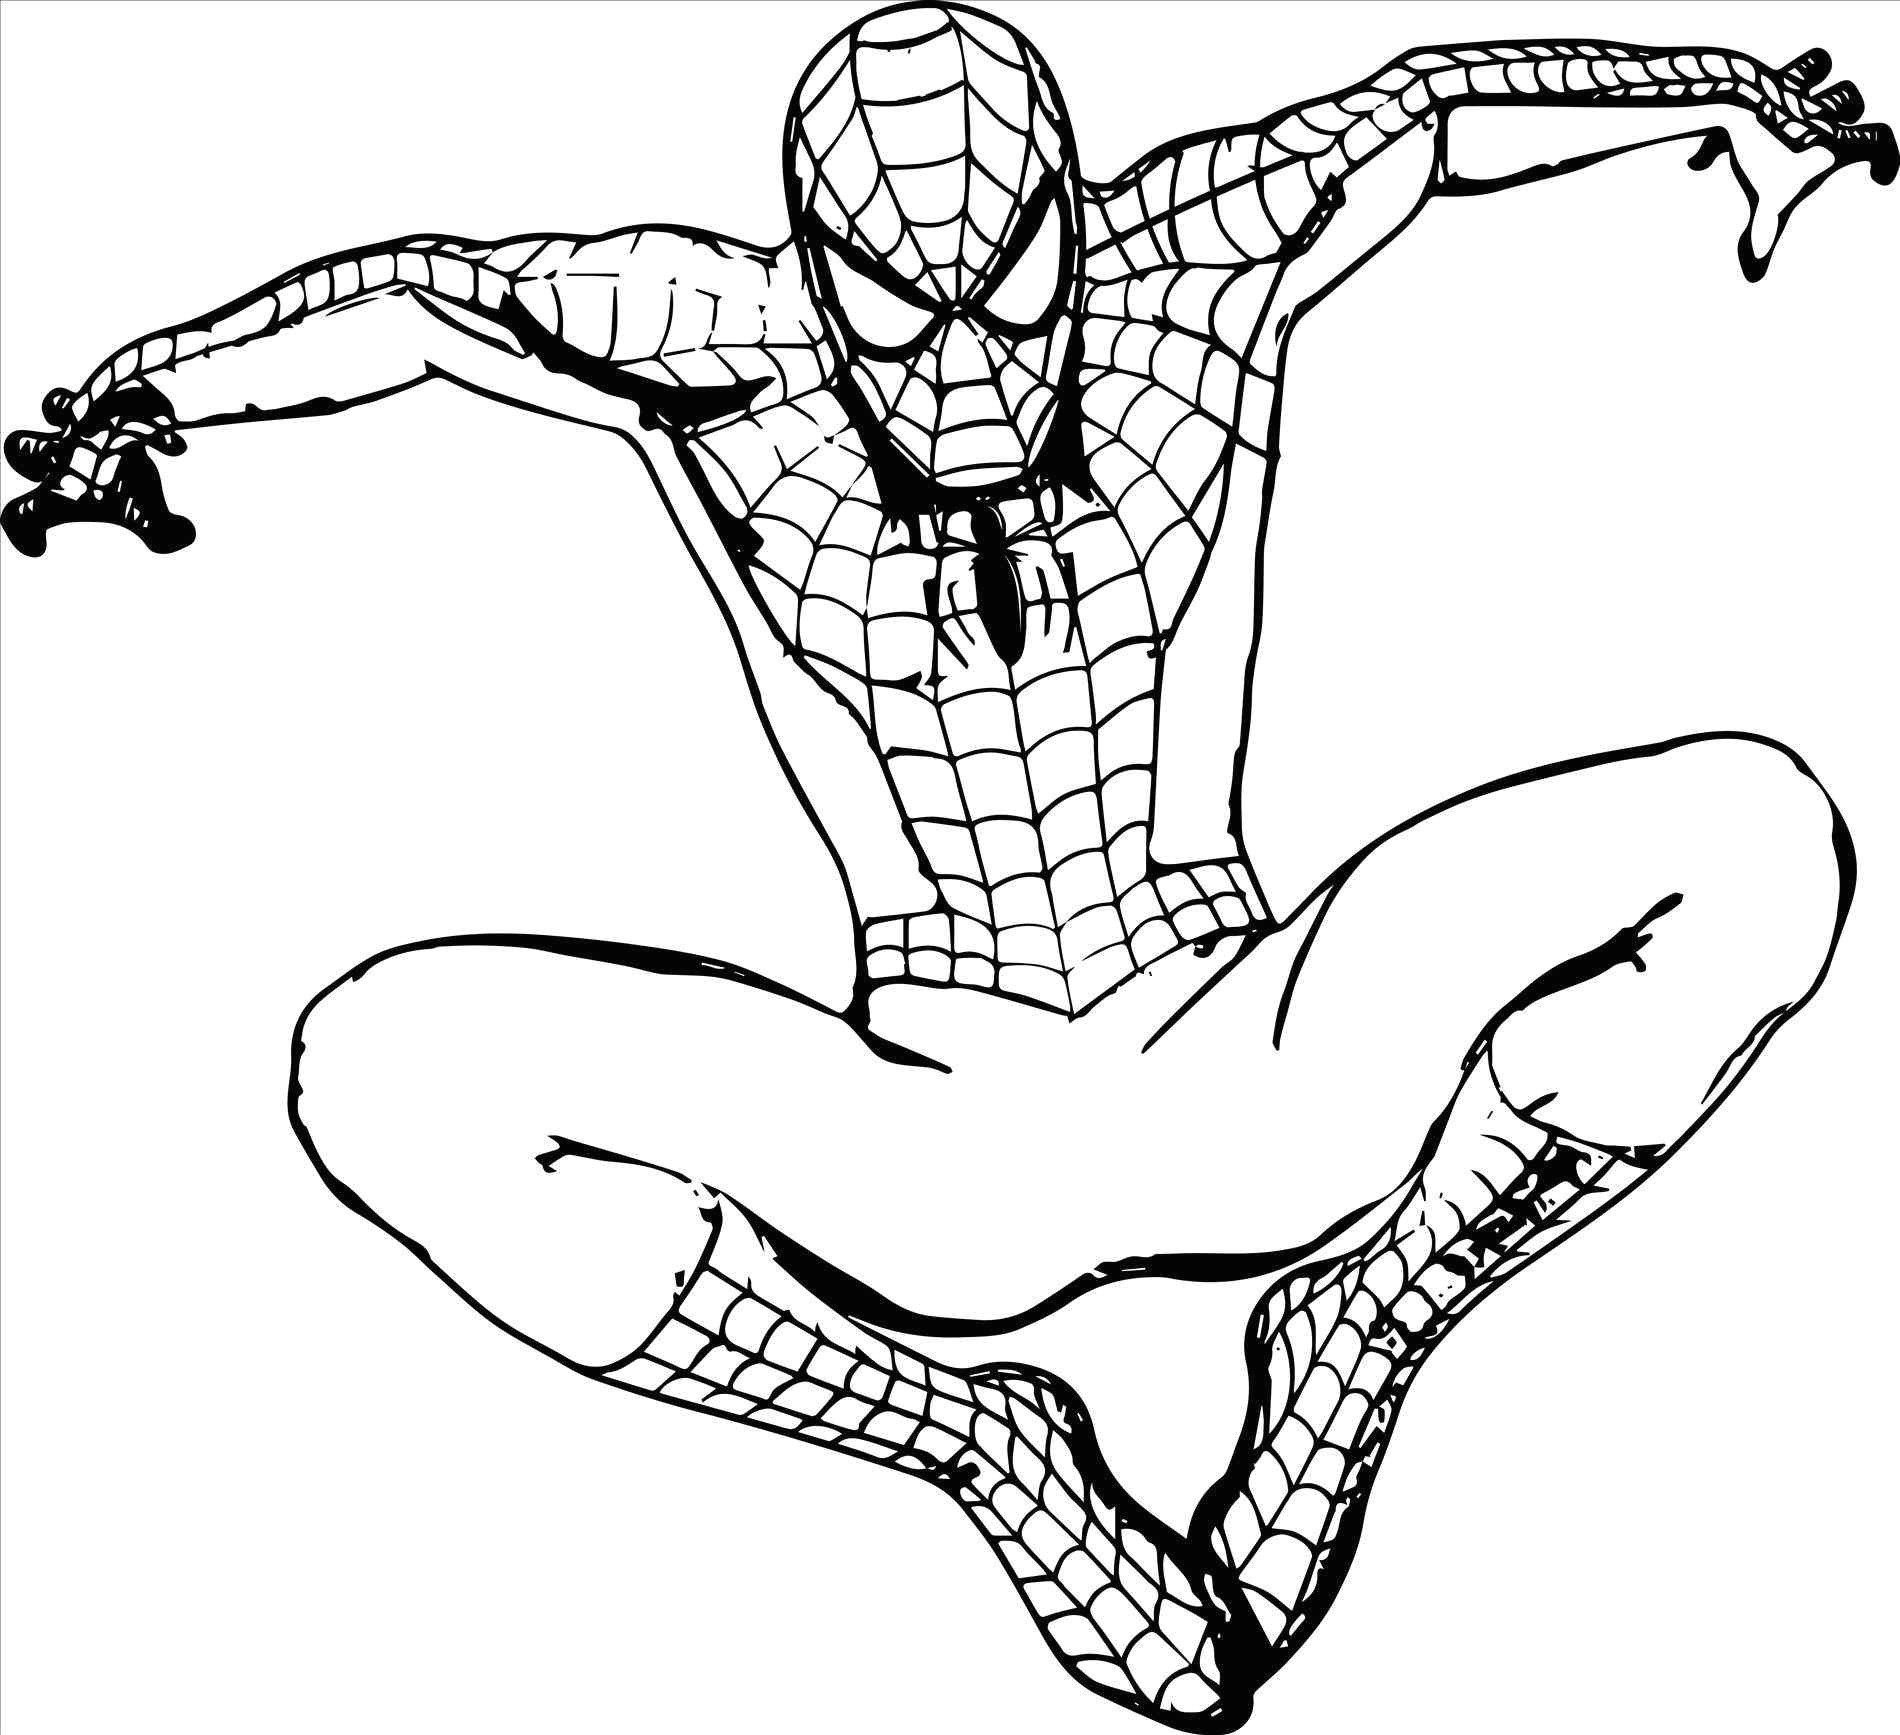 Coloring Pages Of Dragons Beautiful Drawing Easy Superheroes Superheroes Easy To Draw Spiderman Superhero Coloring Pages Superhero Coloring Spiderman Coloring